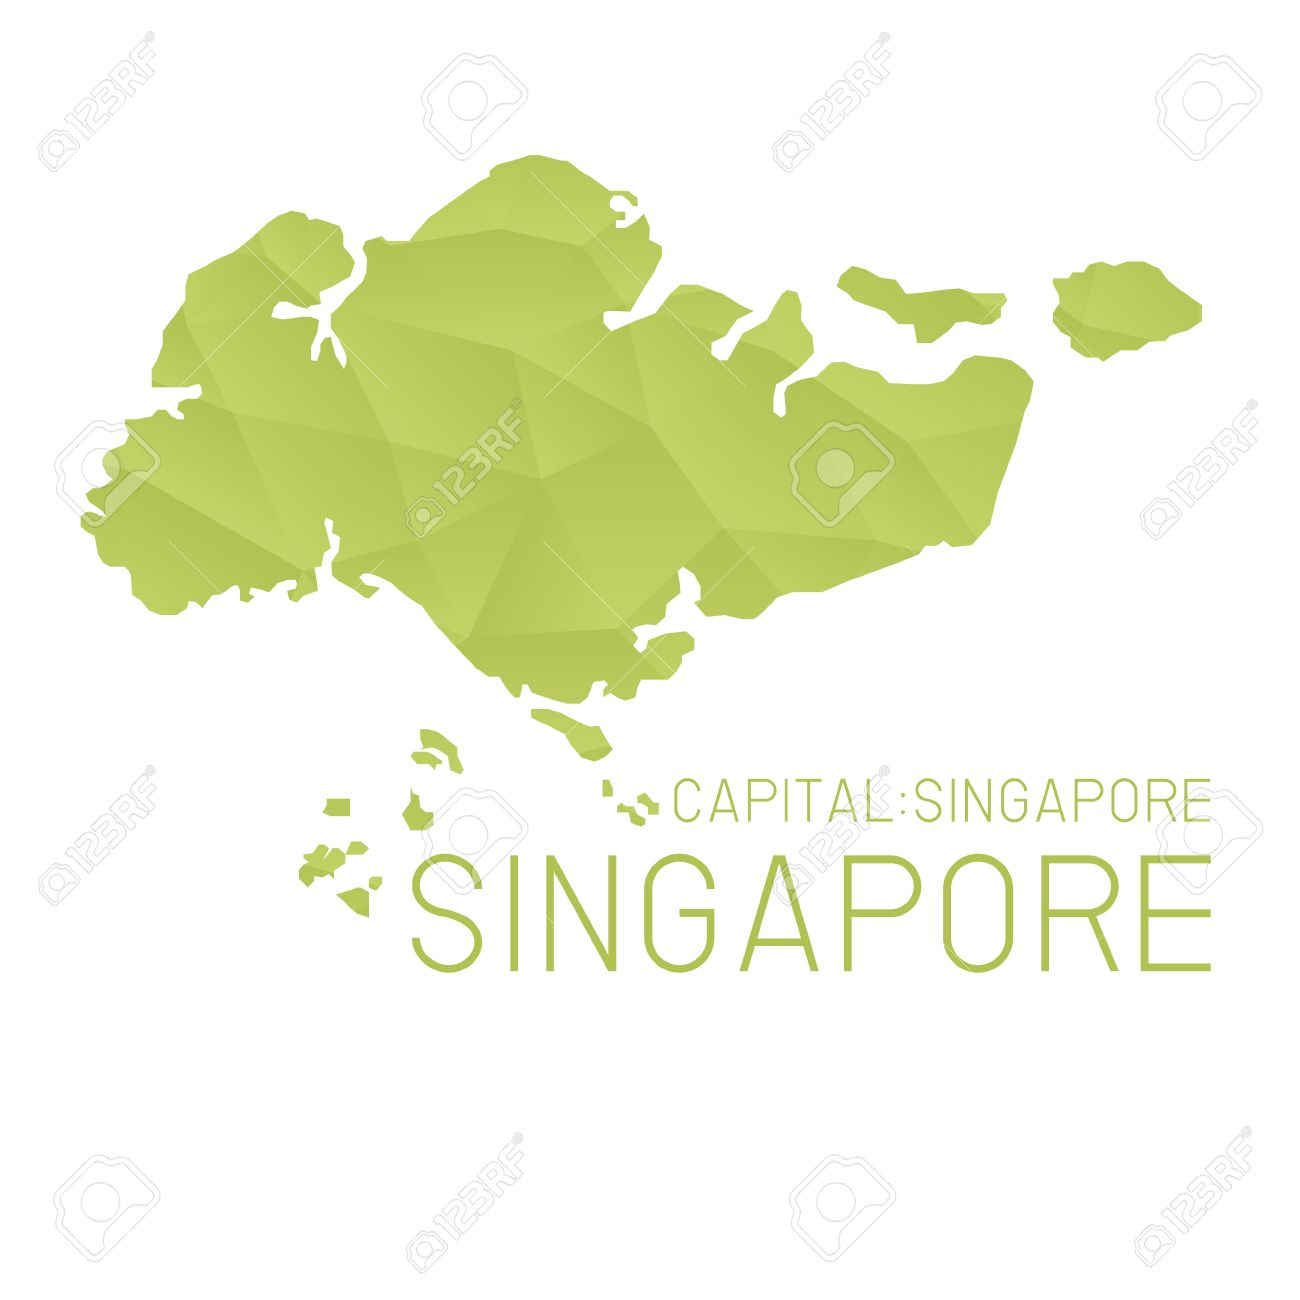 Singapore Map Geometric Background Royalty Free Cliparts Vectors